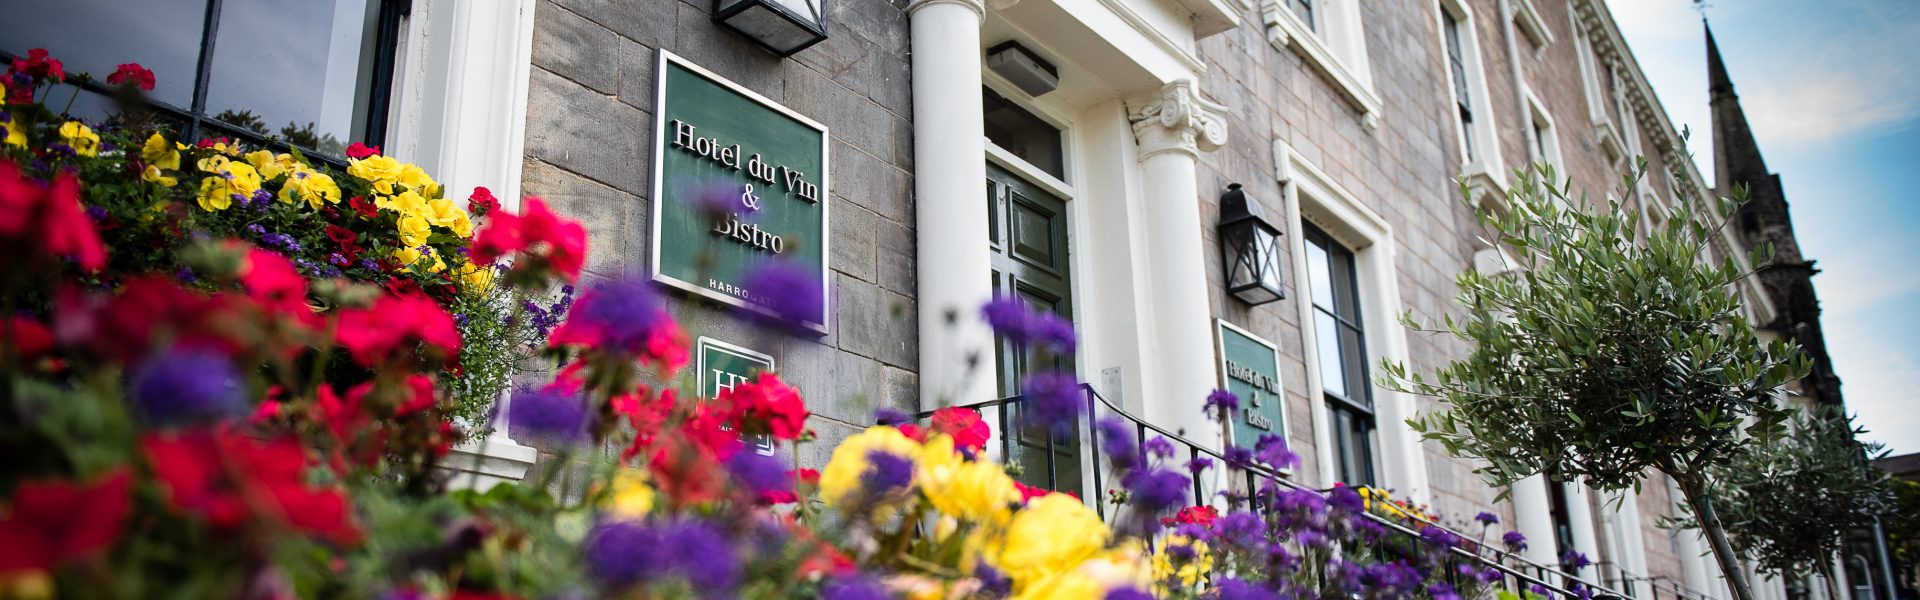 Hotel du Vin Harrogate, North Yorks